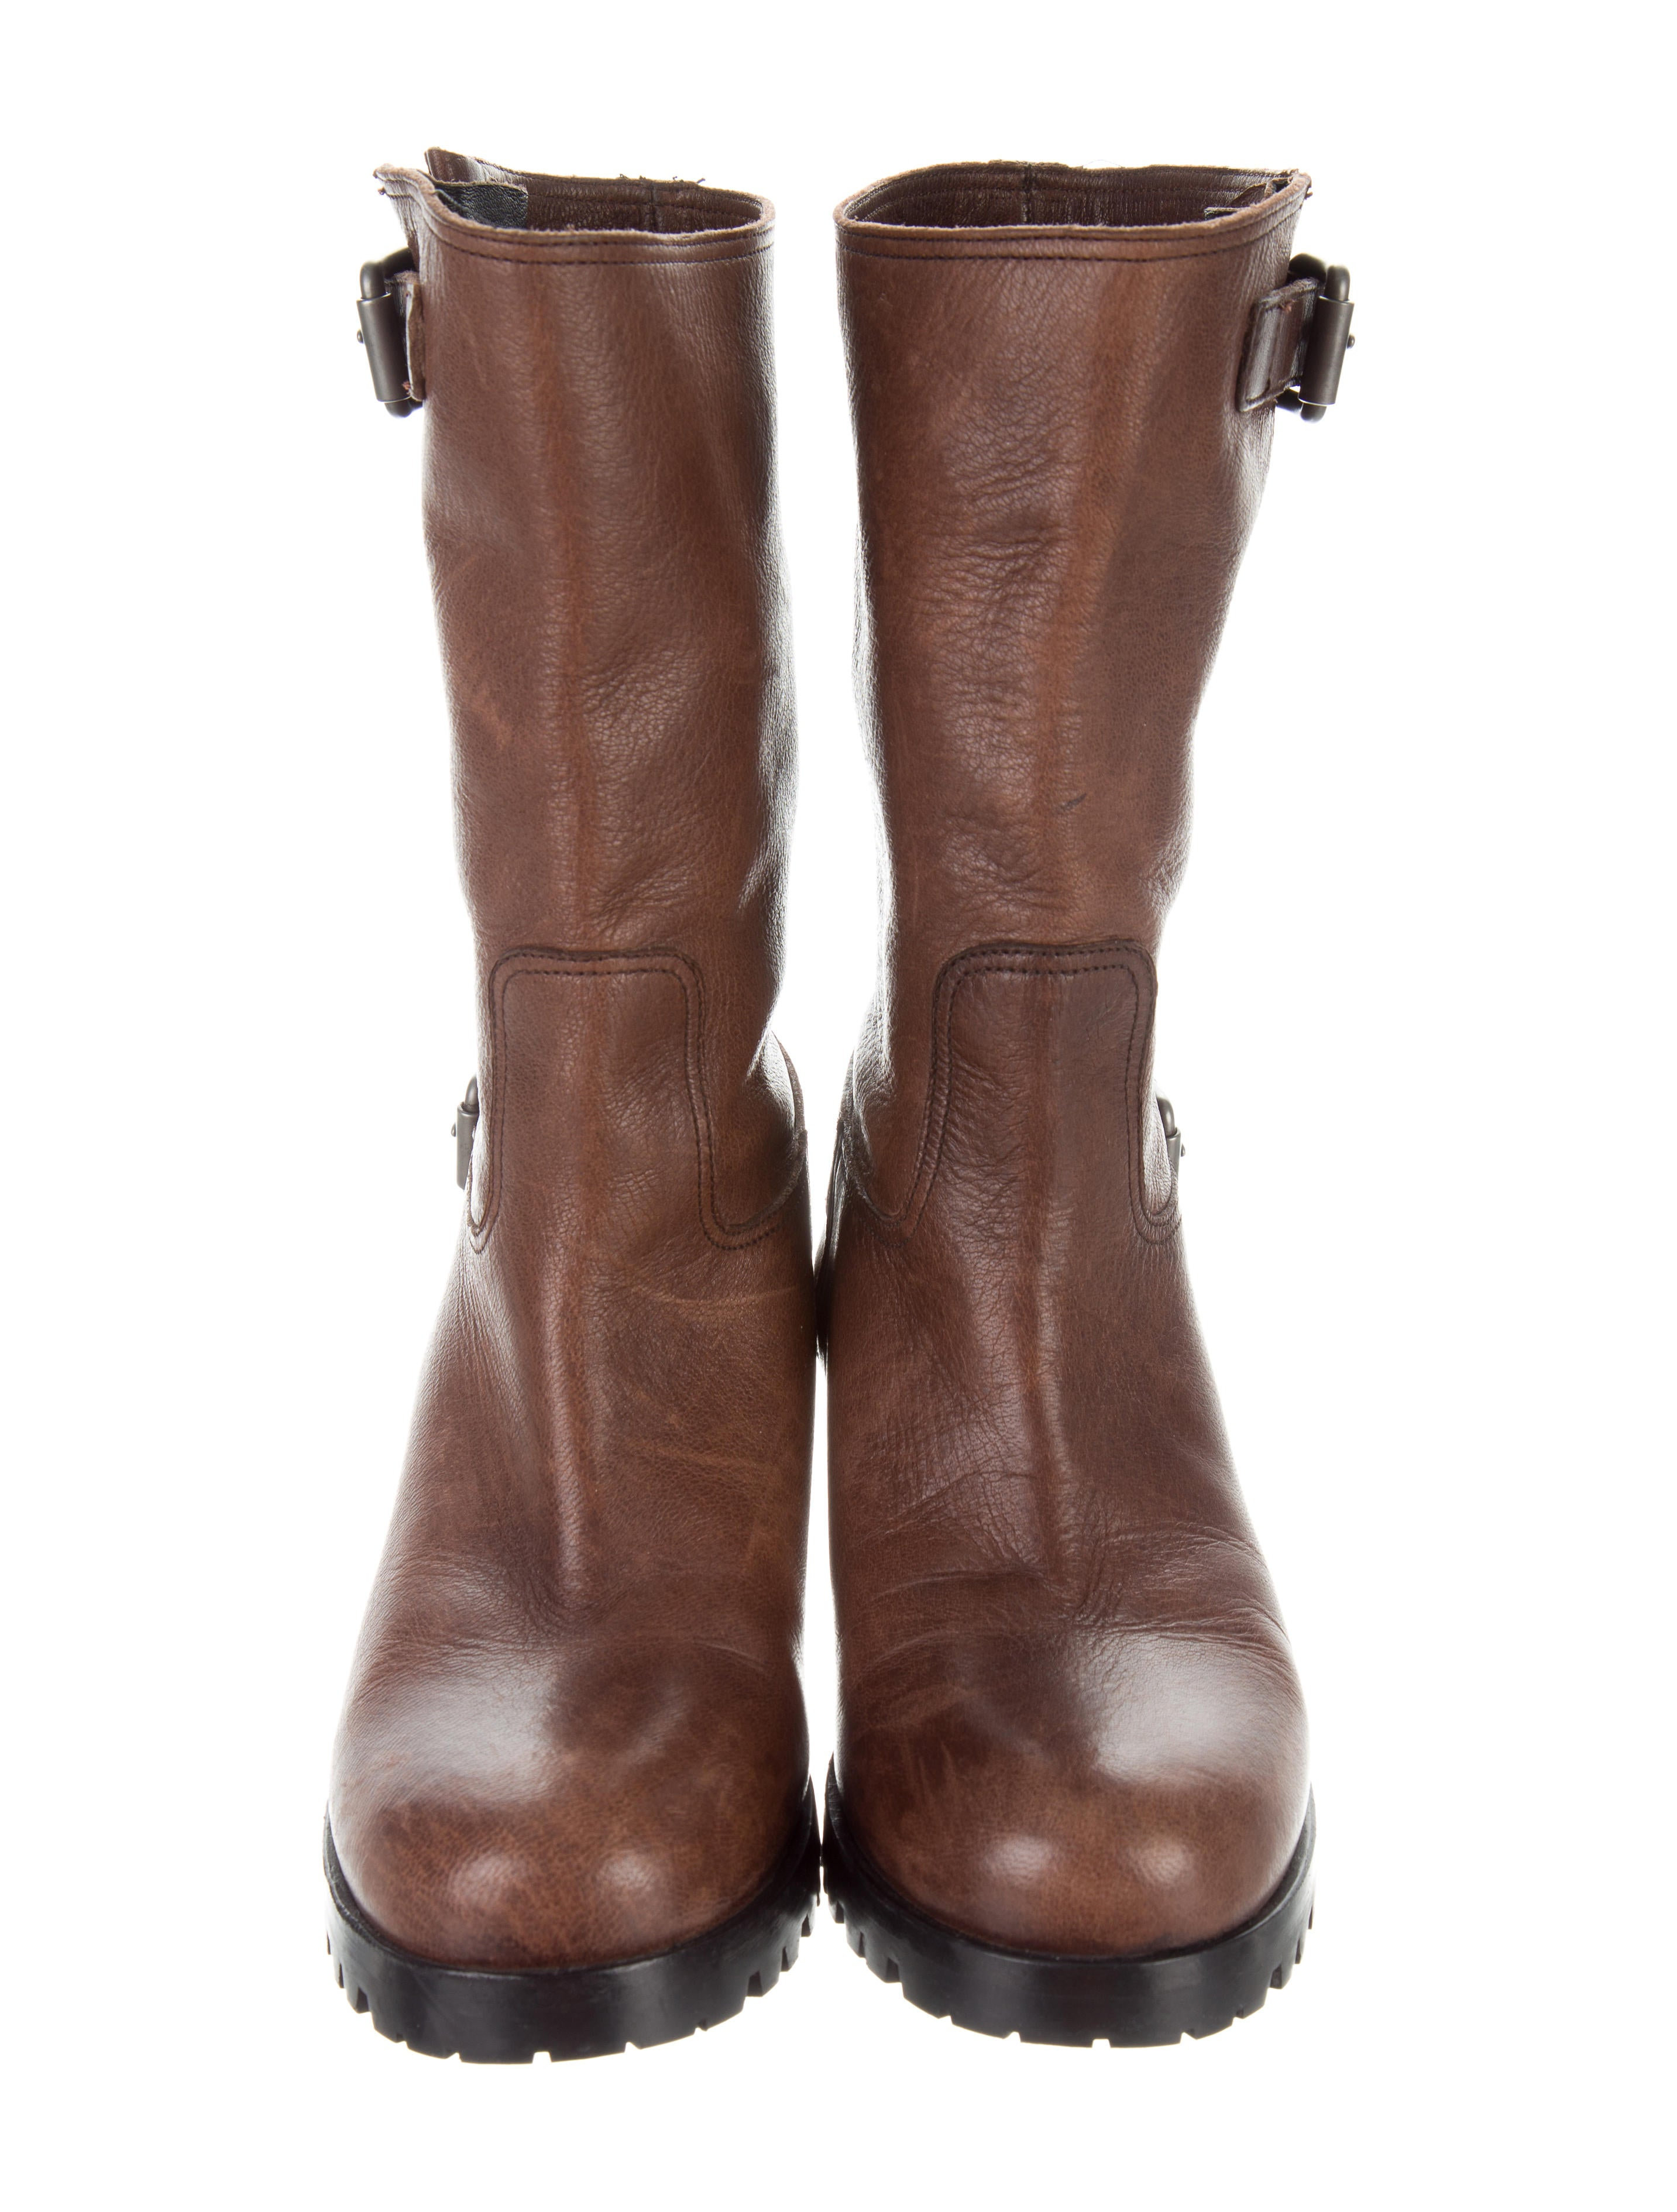 Prada Leather Mid Calf Boots Shoes Pra162697 The